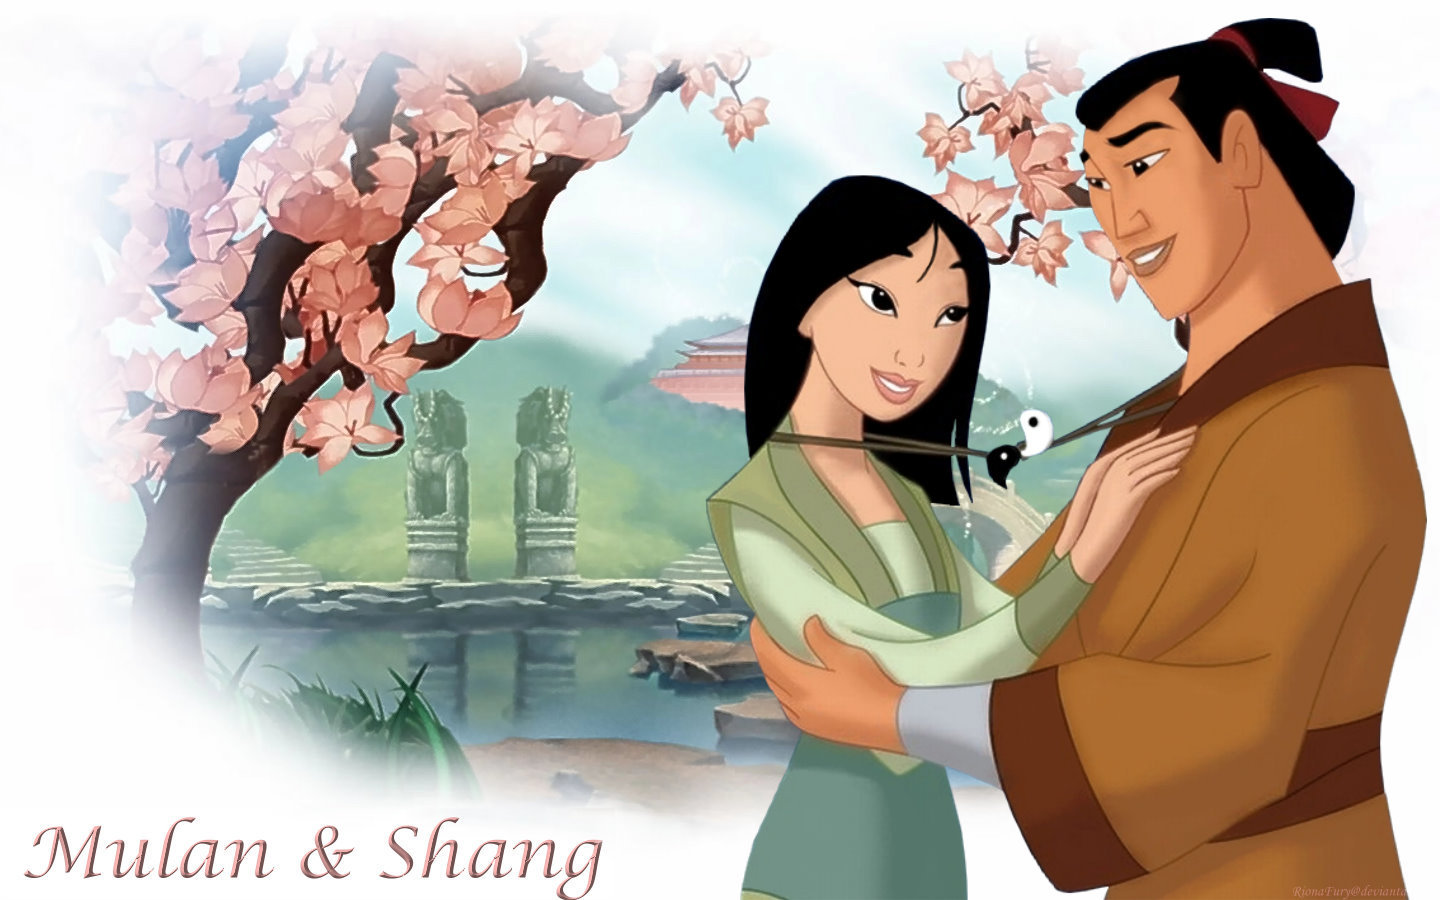 Uncategorized Mulan And Shang mulan ii images and shang hd wallpaper background photos photos